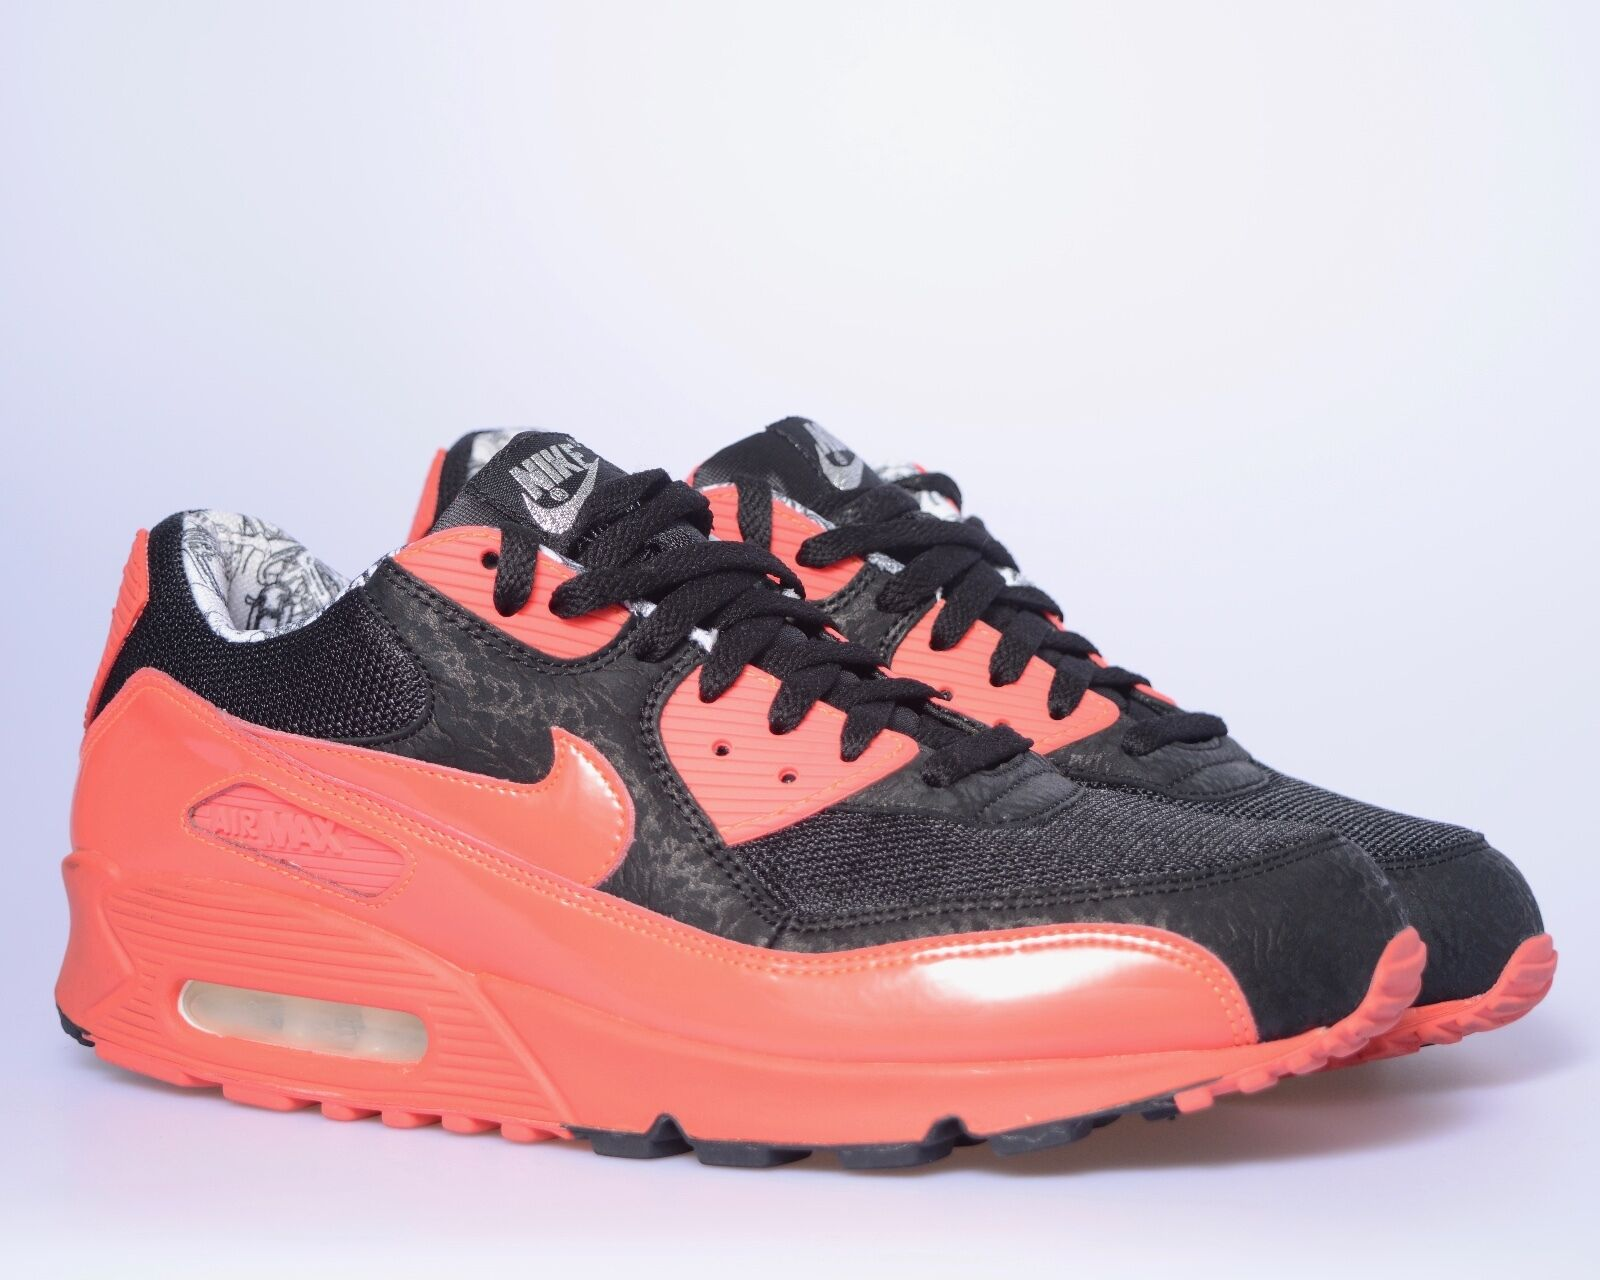 5a257c7b09 Air Max 90 id 255 Studios UK 9.5 44.5 US 10.5 EU Nike npzvbp2690 ...